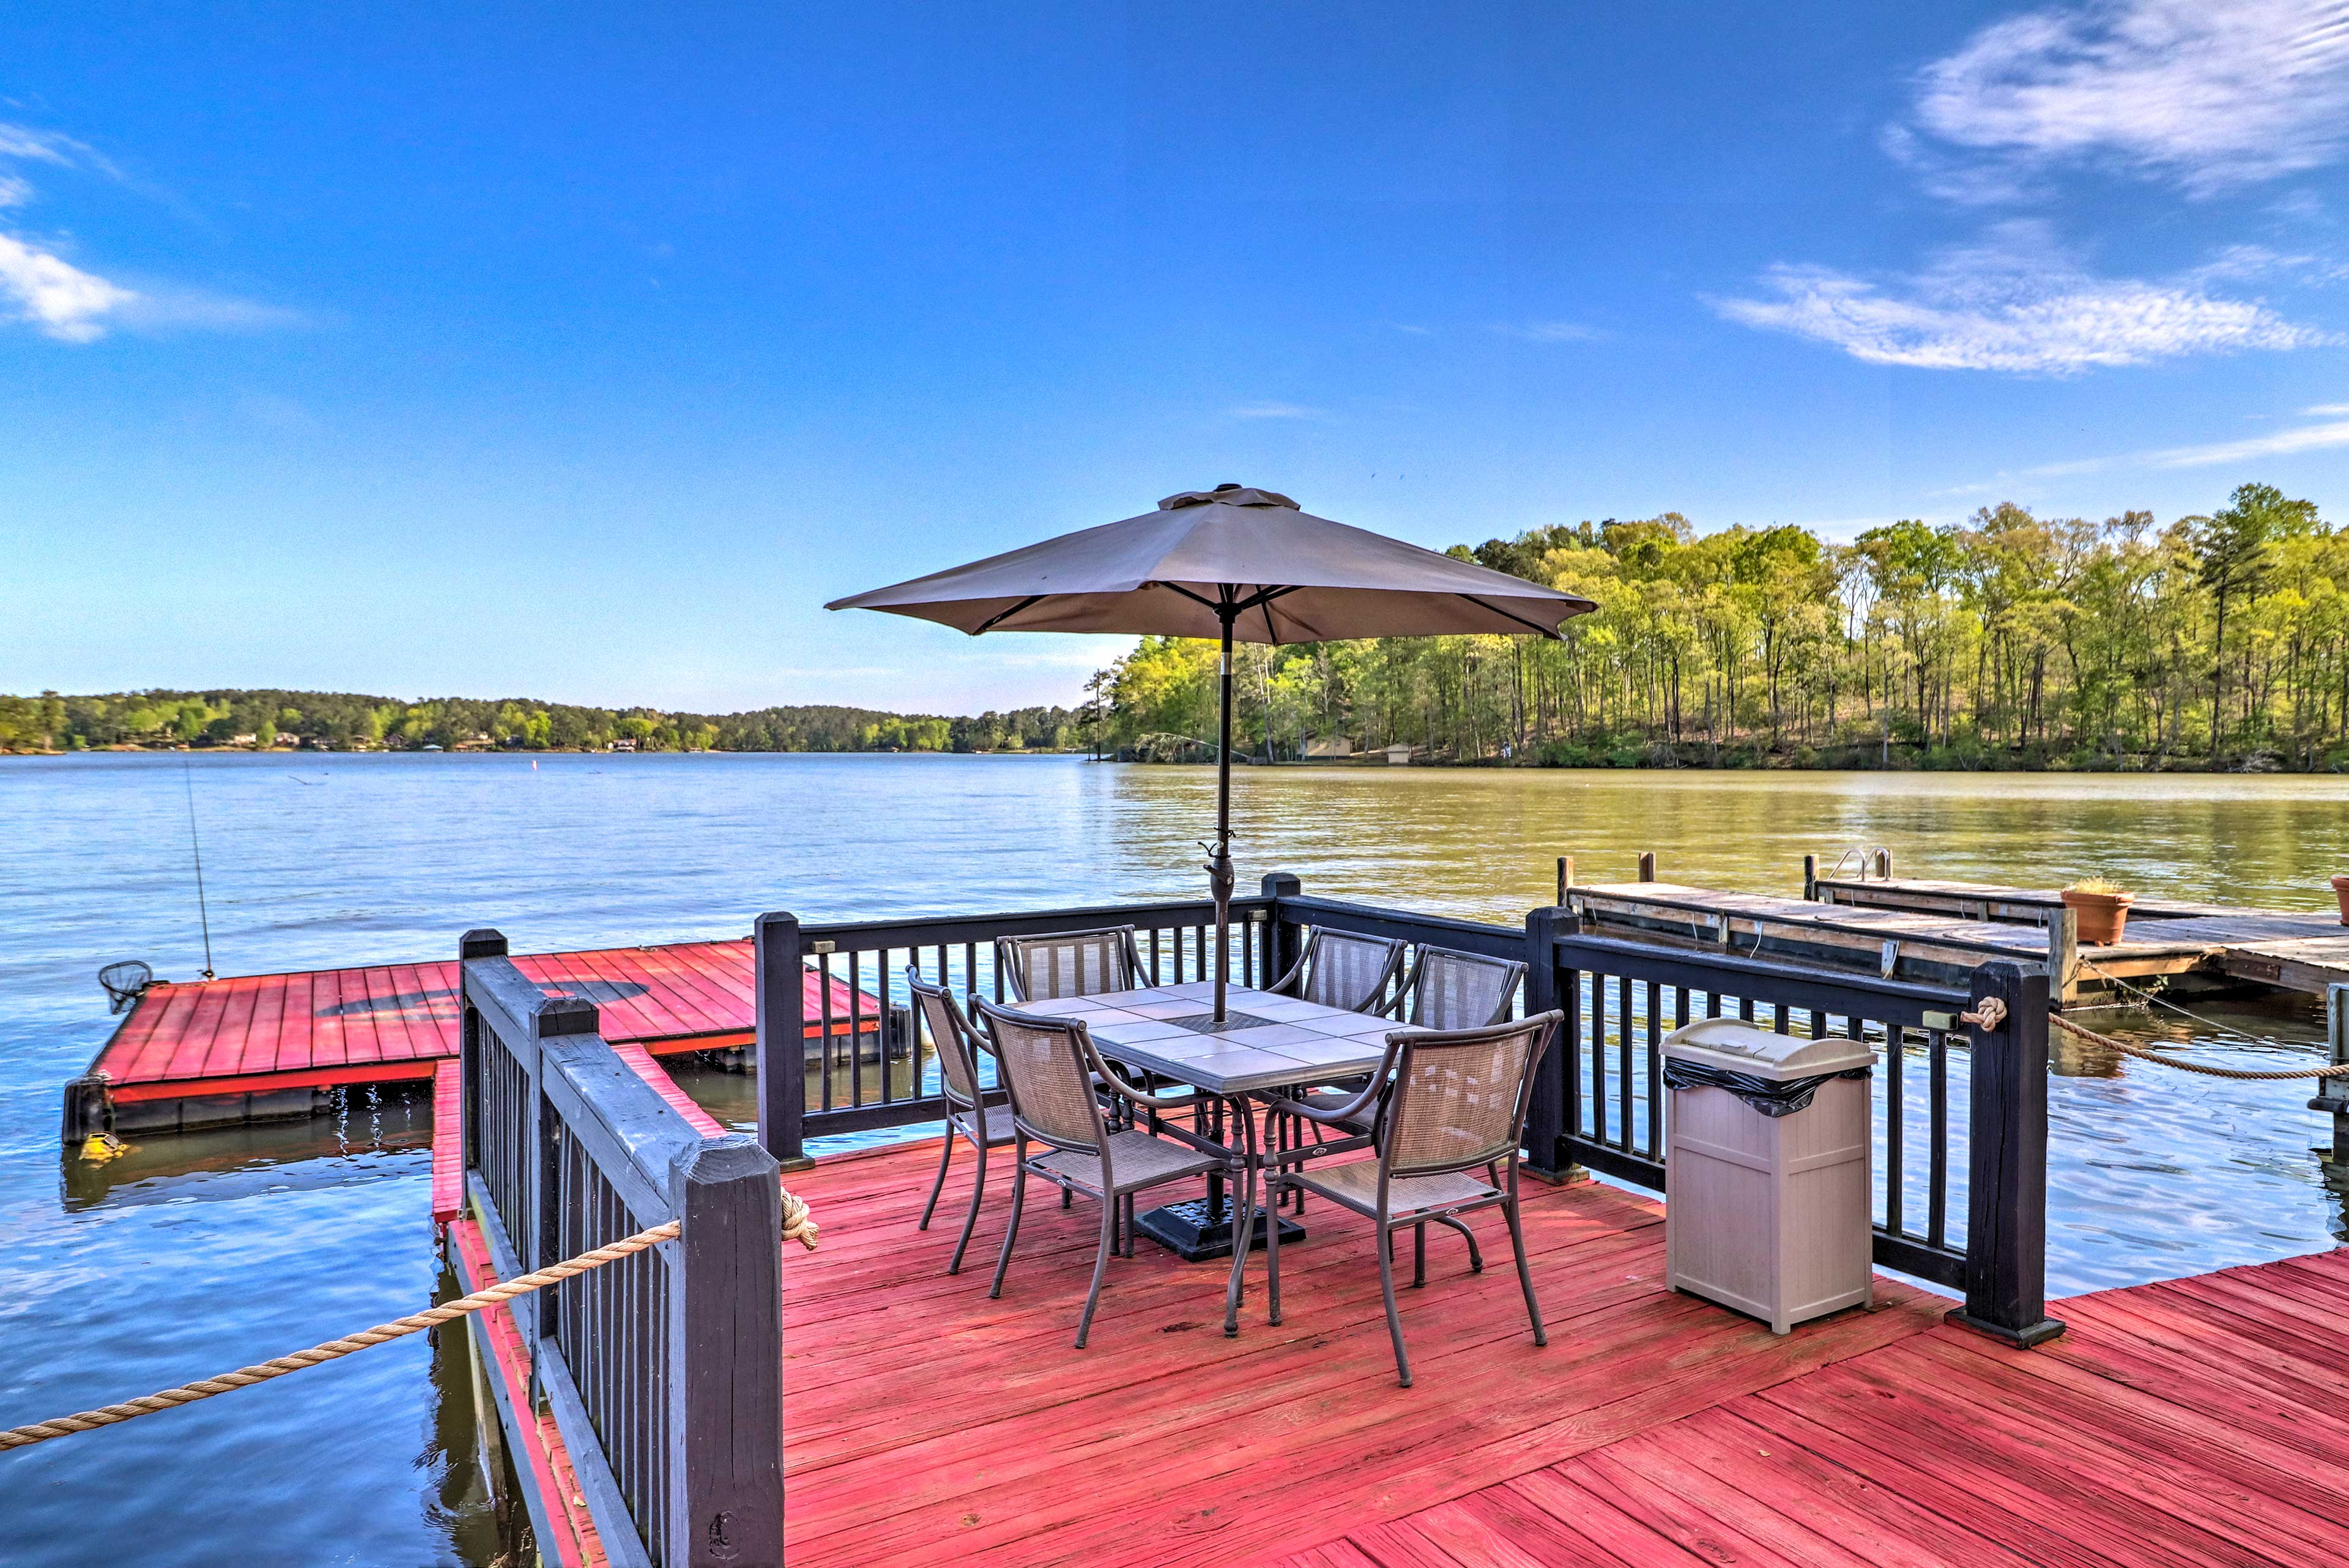 Sip on a sweet tea as you lounge on the deck.